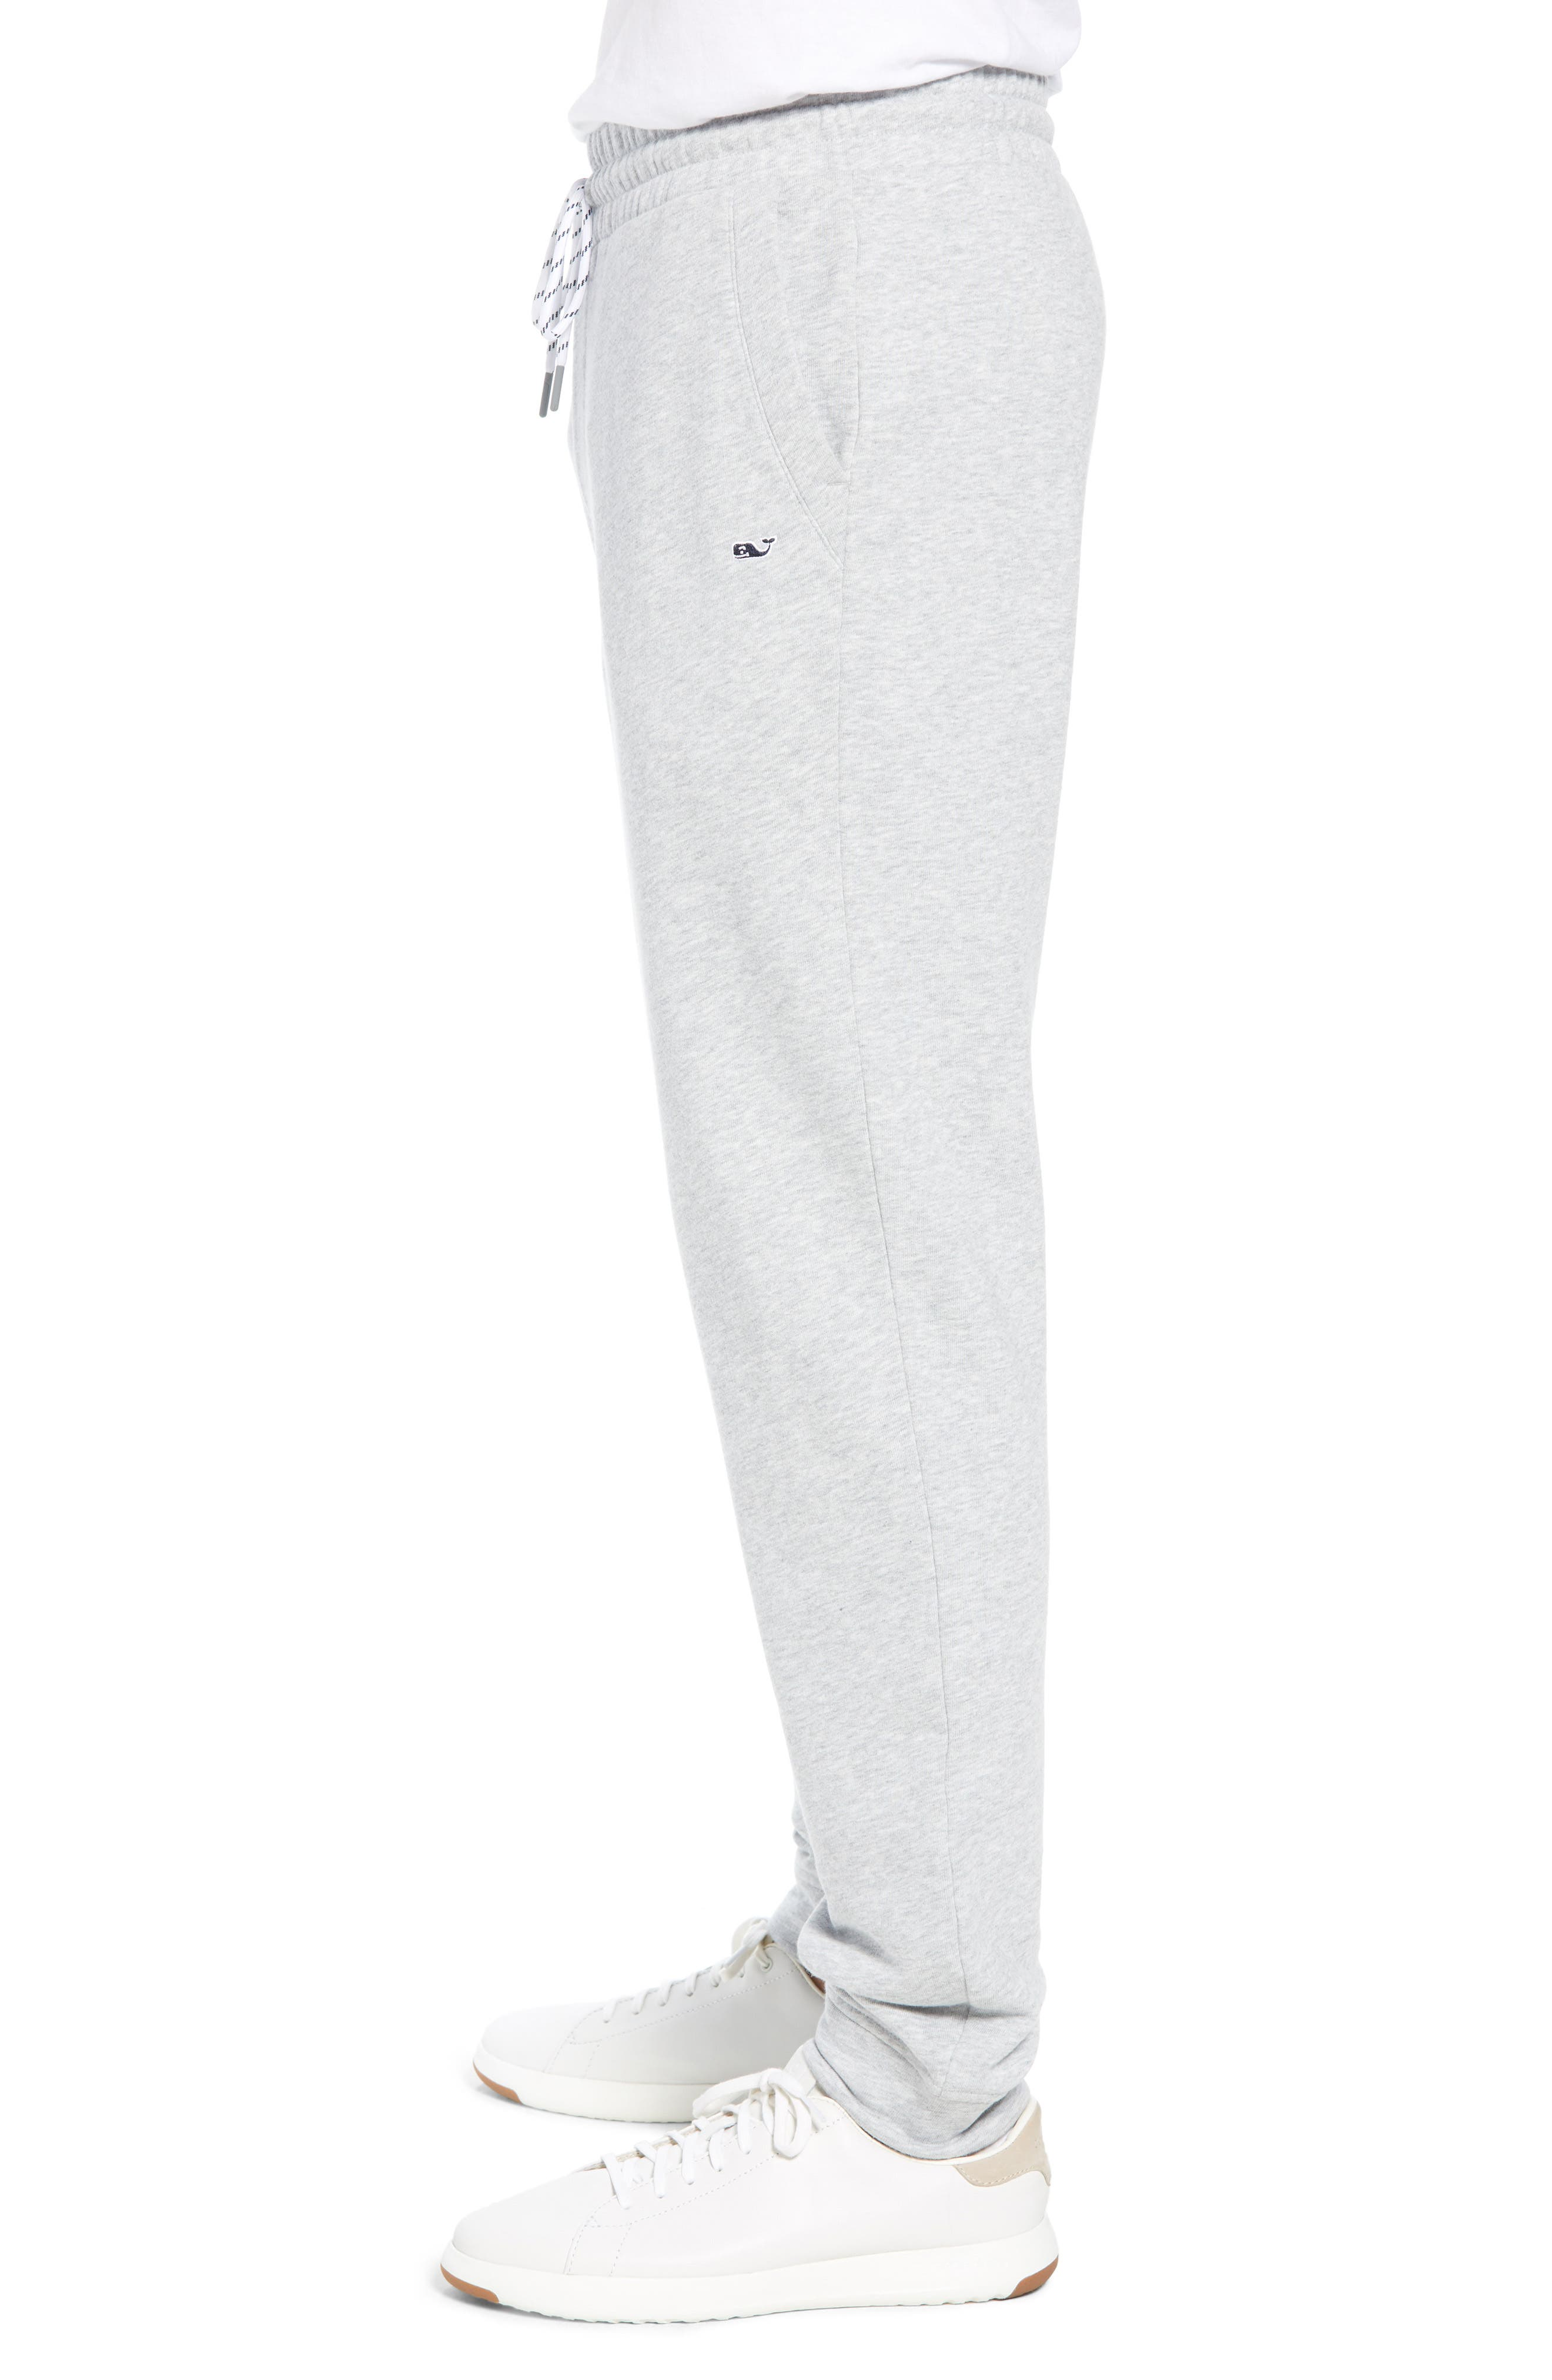 Heritage French Terry Knit Jogger Pants,                             Alternate thumbnail 3, color,                             GRAY HEATHER